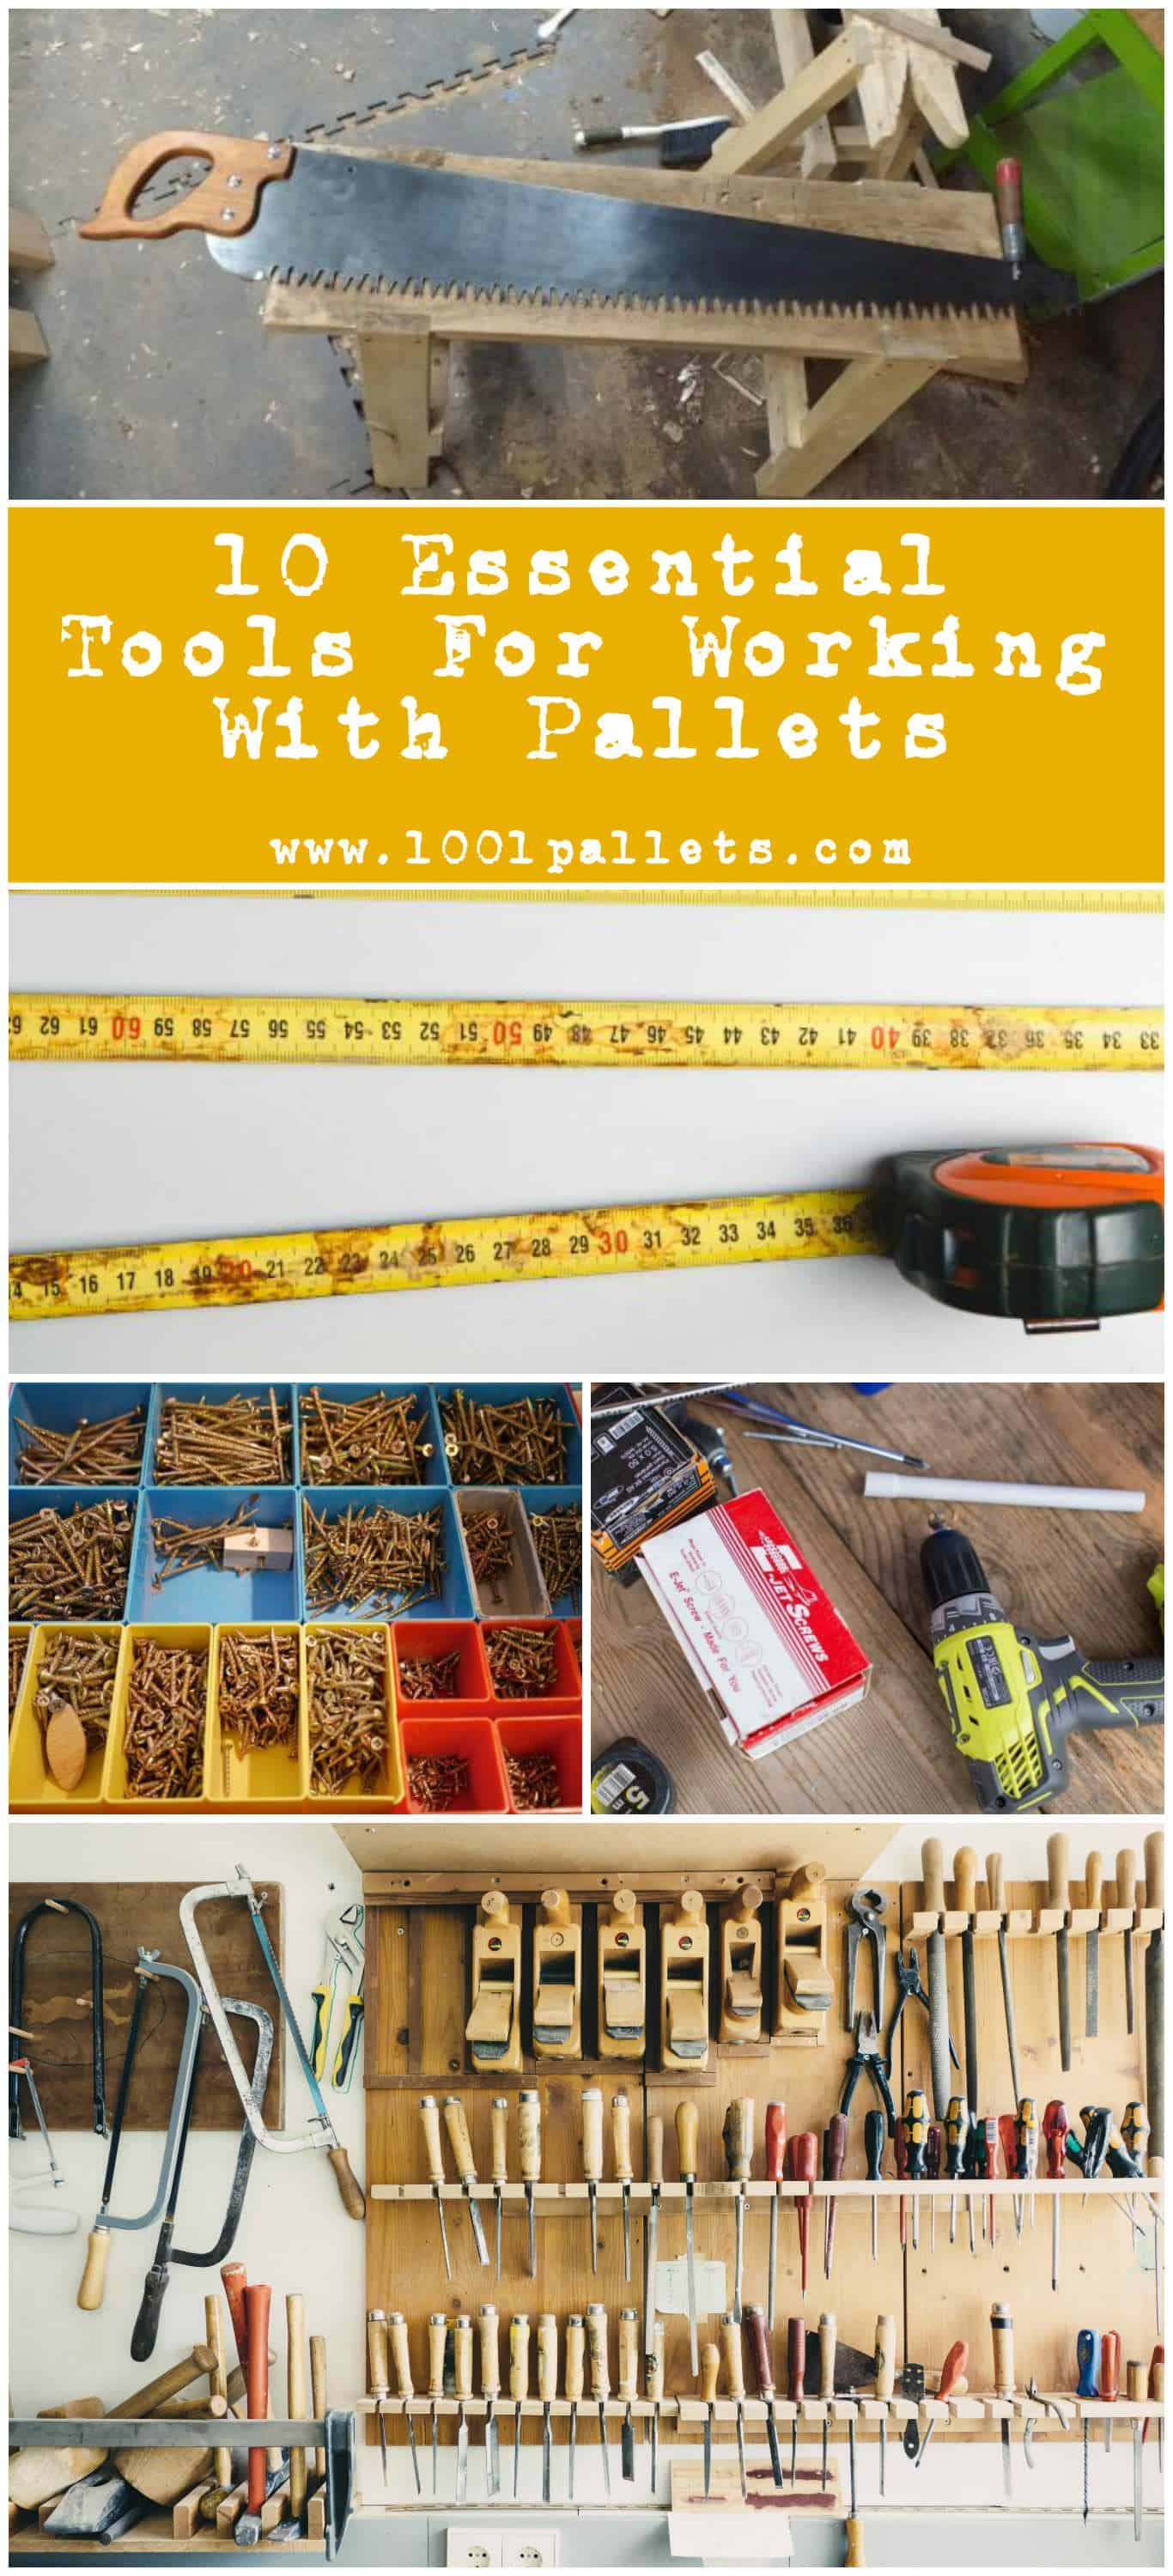 10 essential tools for working with pallets pallet ideas 1001 pallets